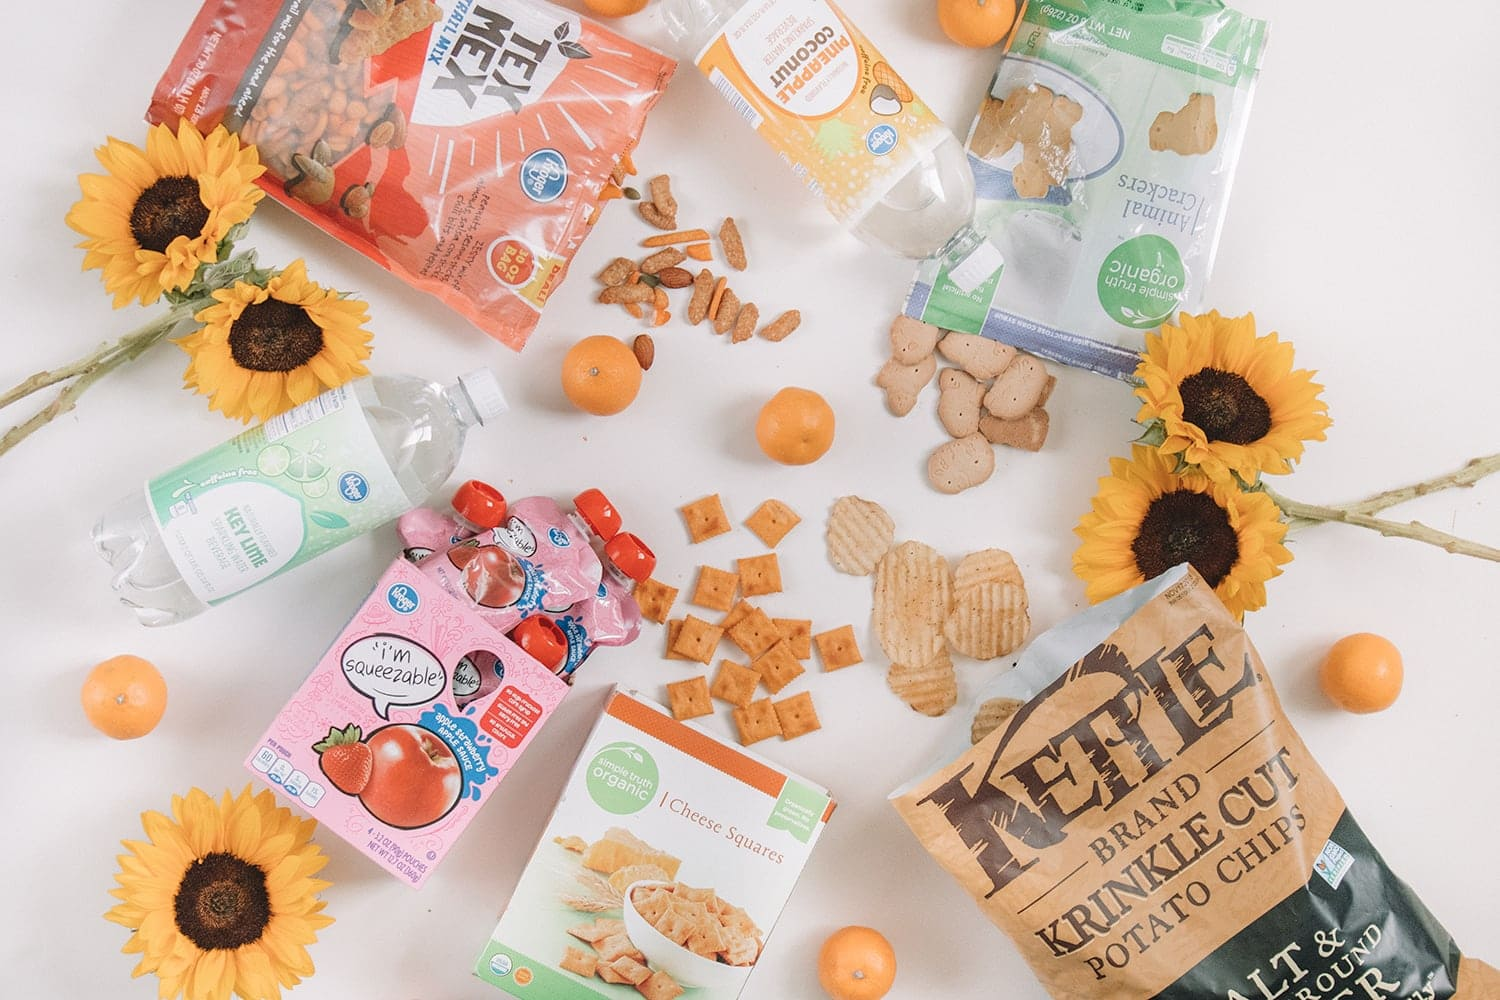 Houston blogger Meg O. on the Go shares some road trip snack ideas for the family